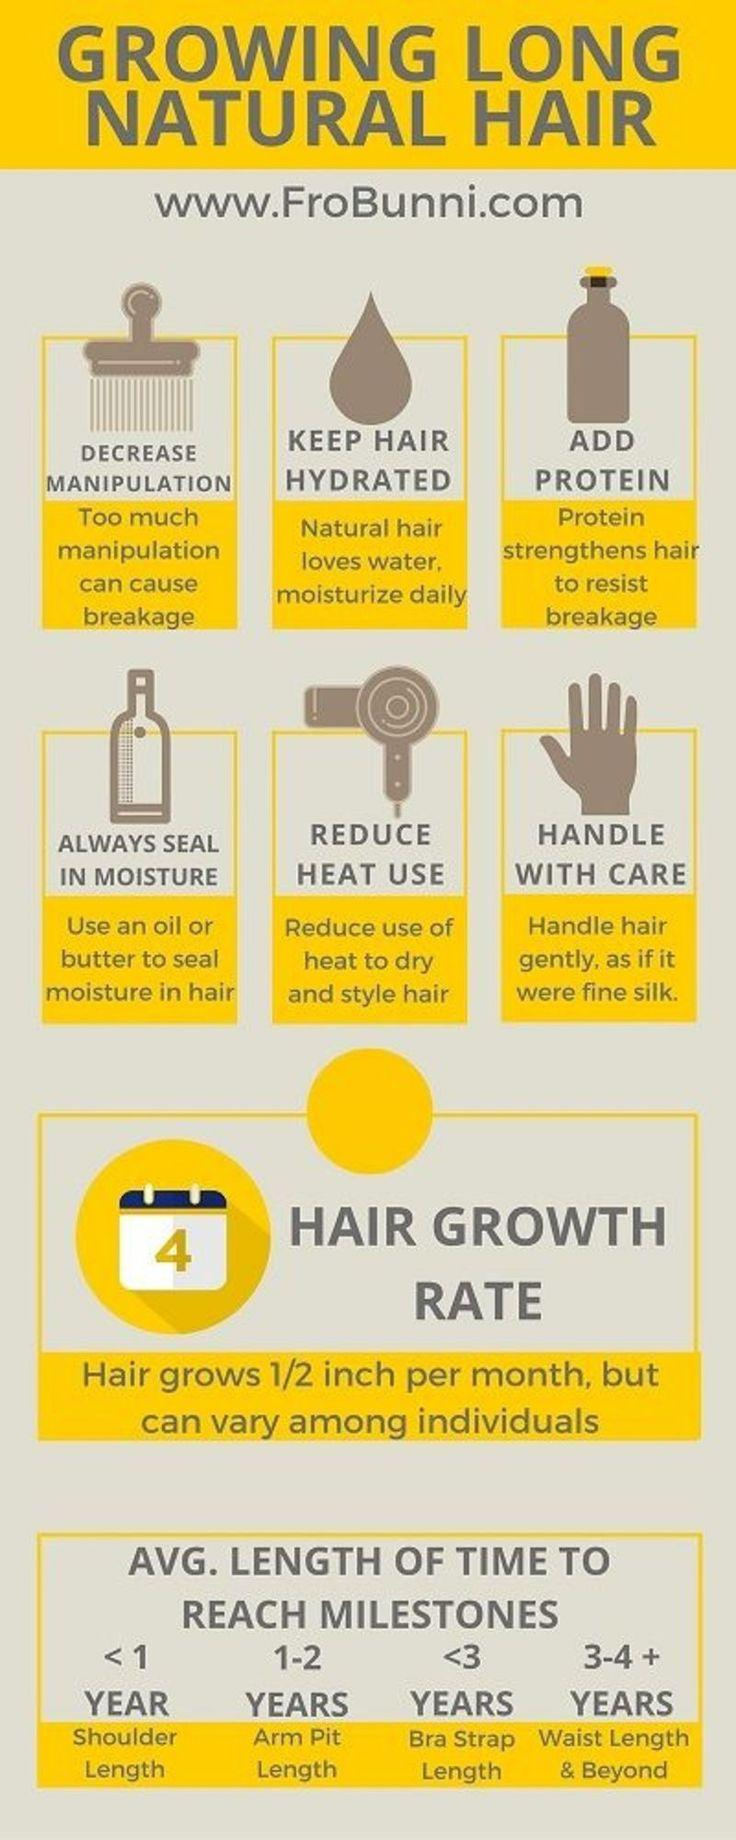 Tips For Growing Long Natural Hair